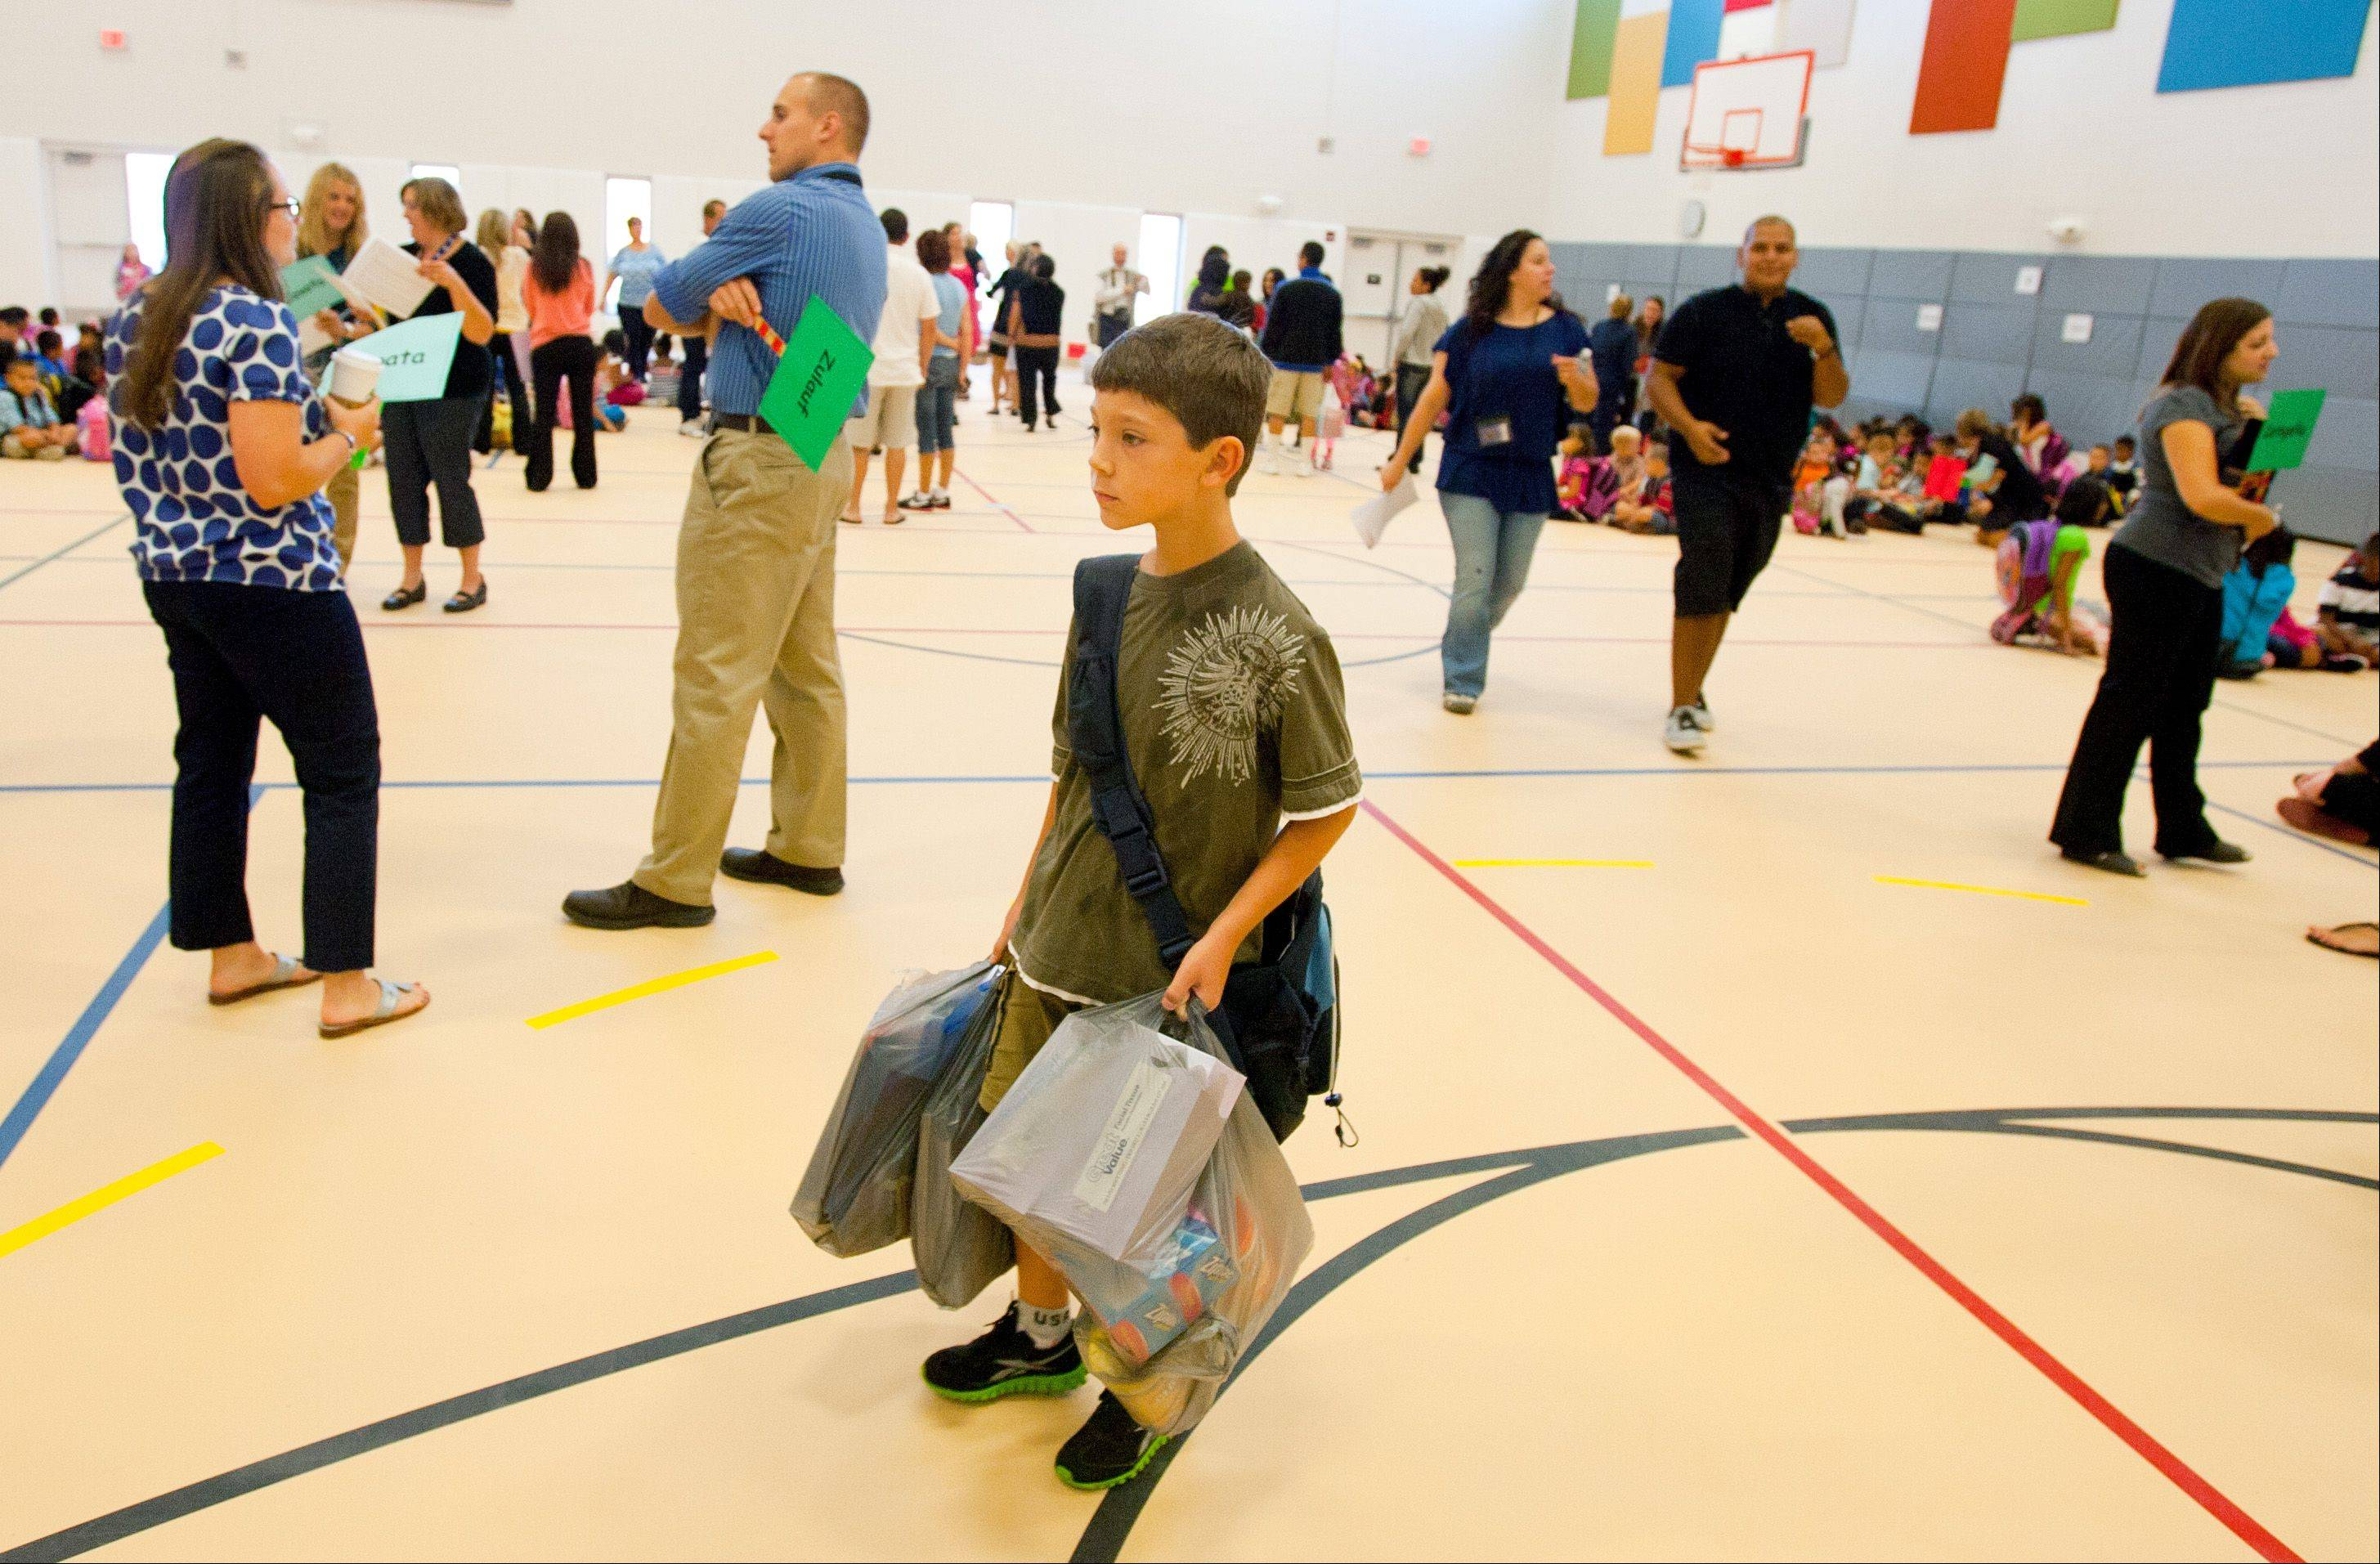 Alan Lazar eyes his fourth-grade classmates Wednesday inside the new, $21.8 million addition at Tioga School in Bensenville during the first day of school.